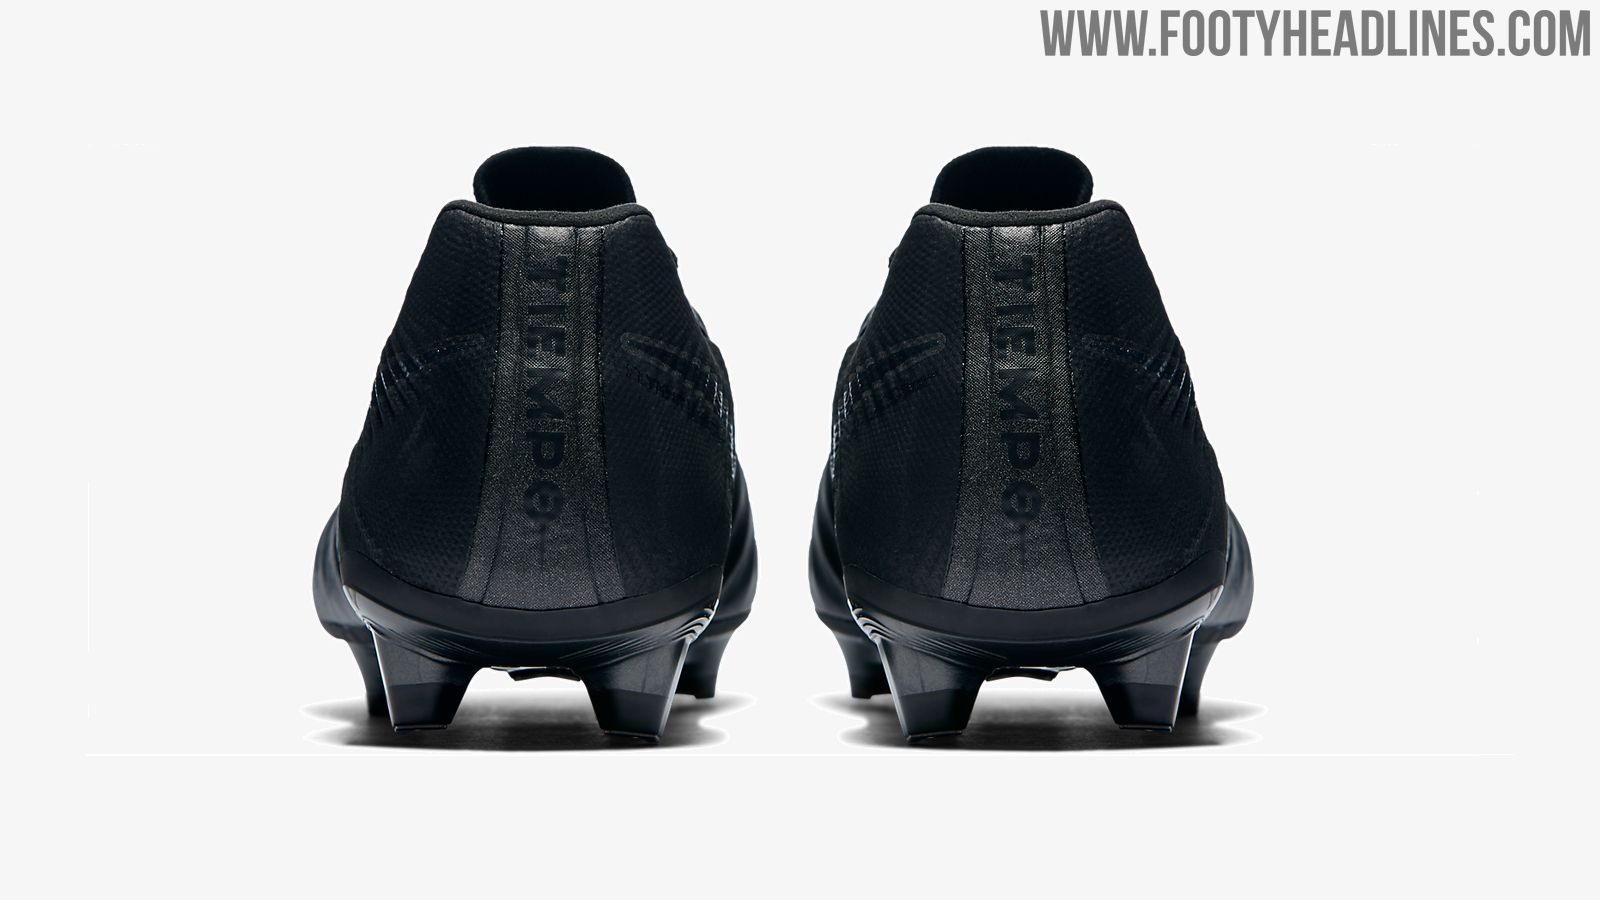 572085f44 Do you like the Blackout Nike Tiempo Legend VII cleat from Nike s 2018-2019 Stealth  Ops pack  Drop us a line below